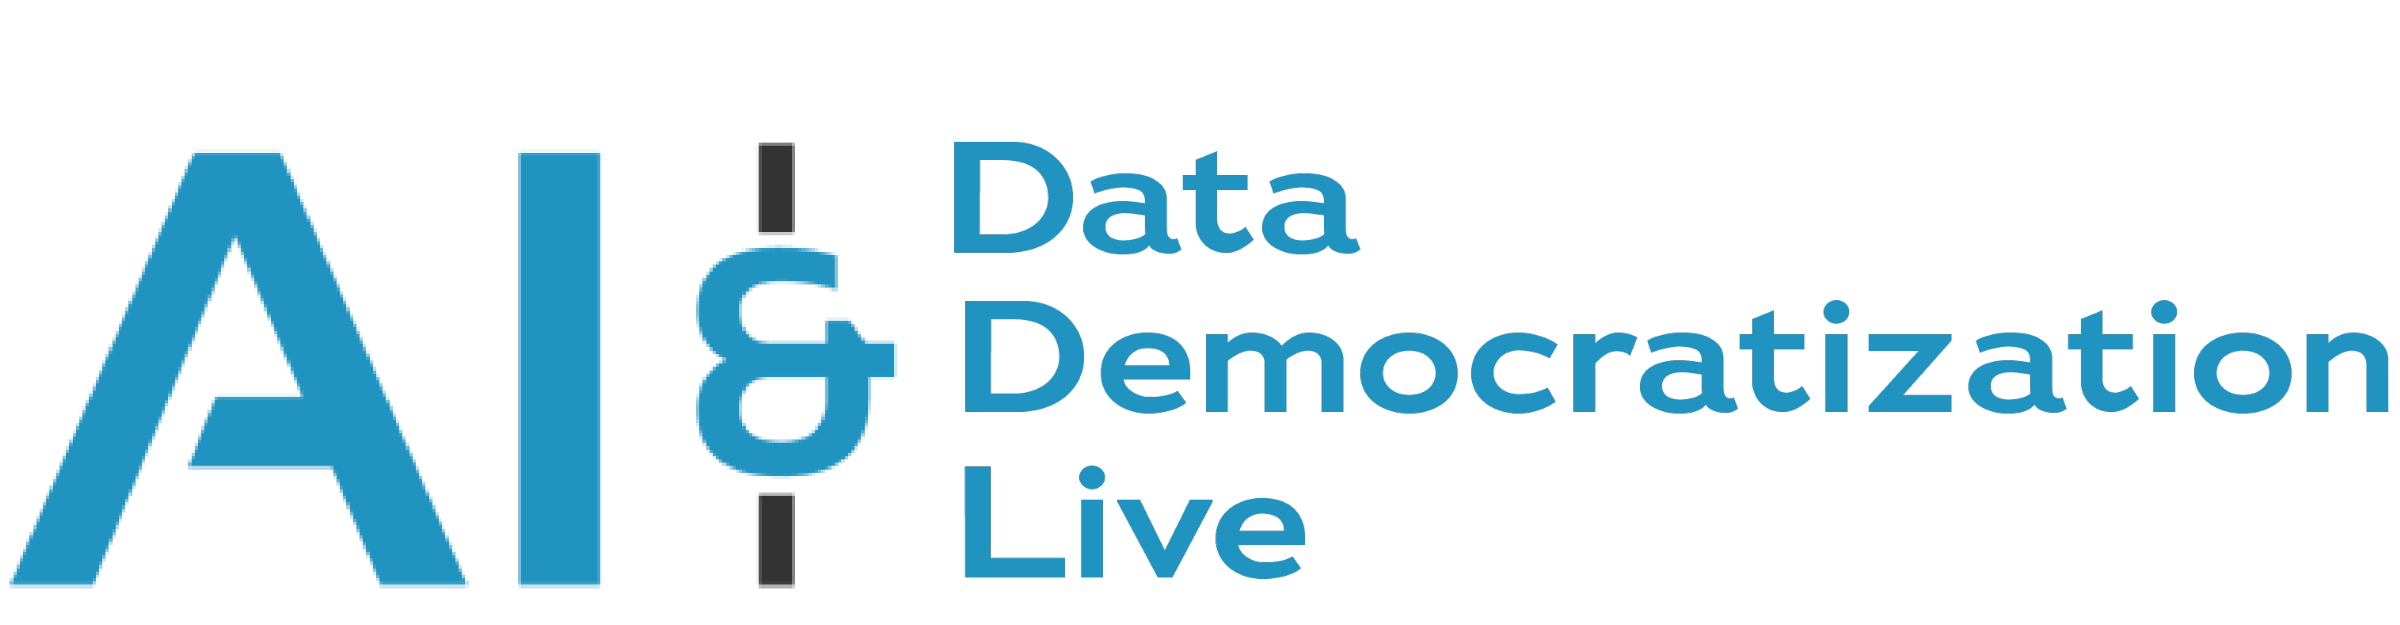 AI & Data Democratization Live